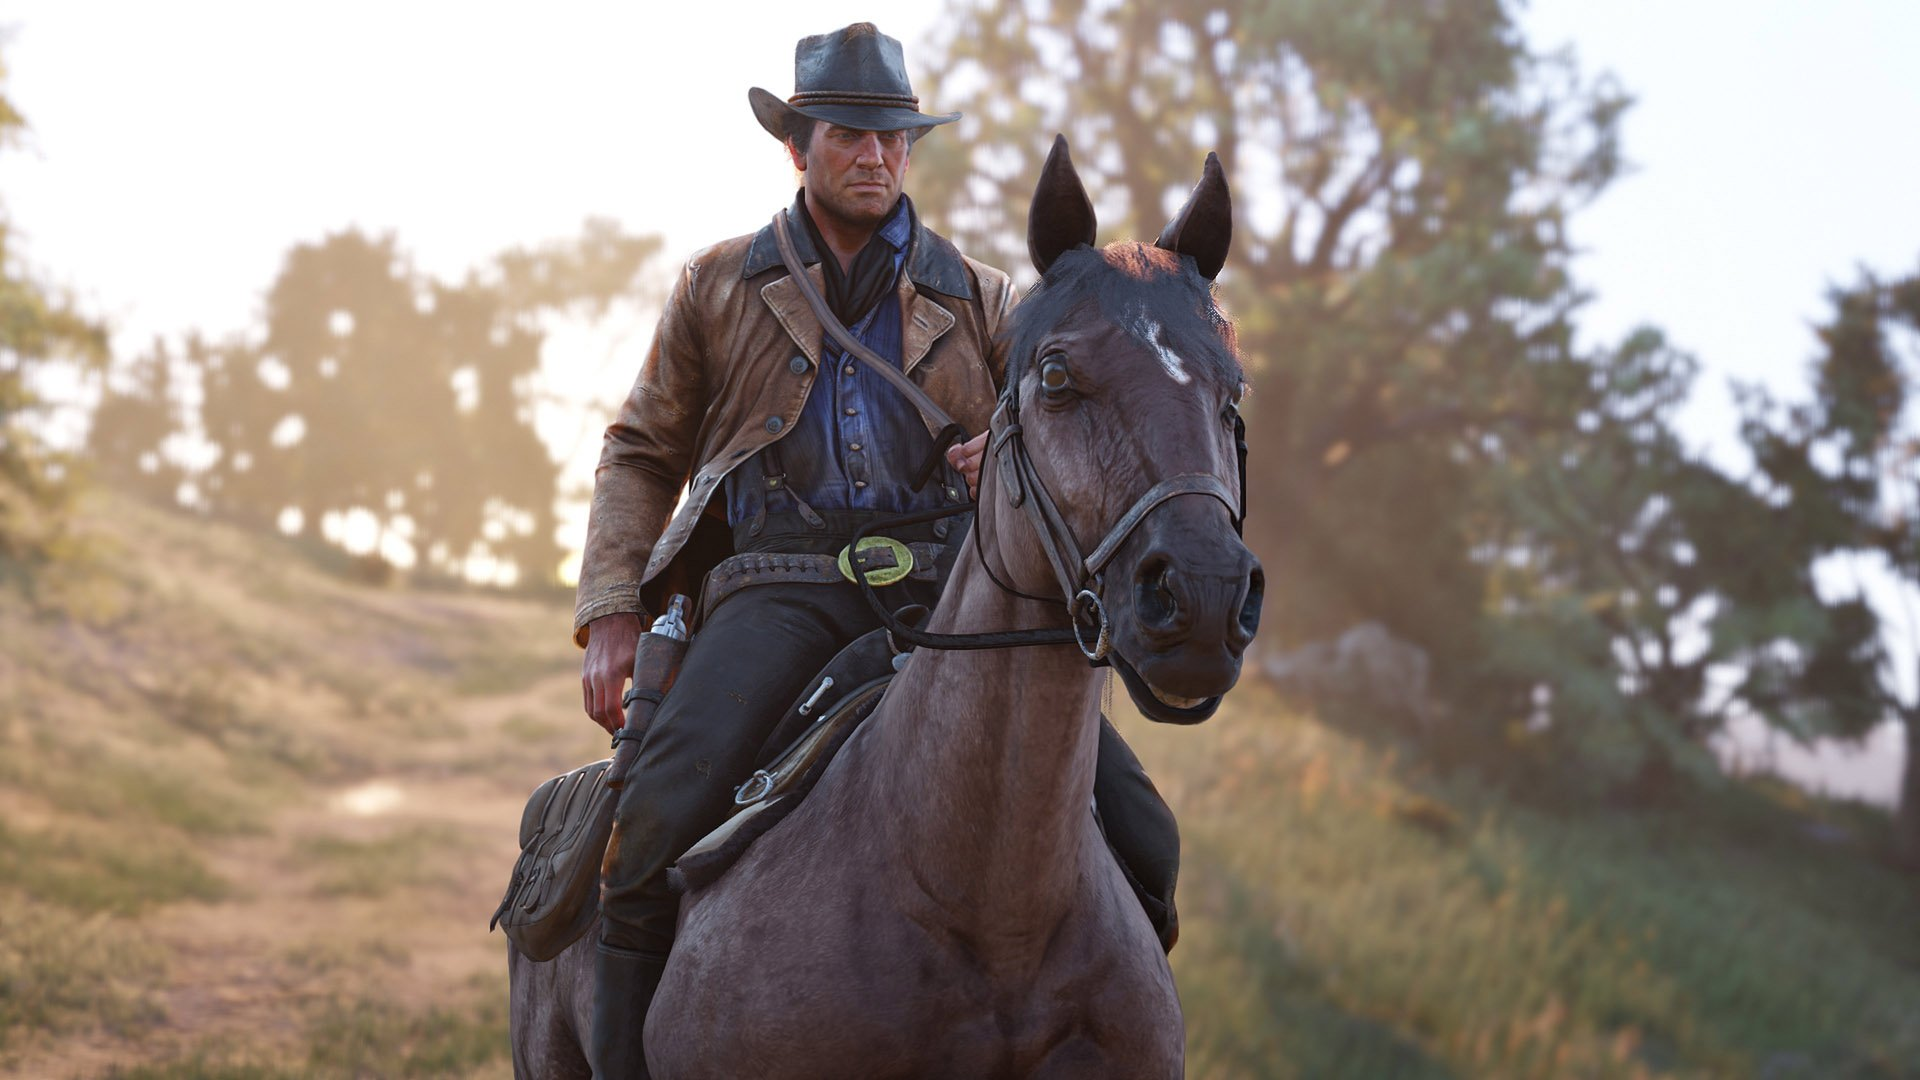 Horse bonding, grooming, and reviving - Red Dead Redemption